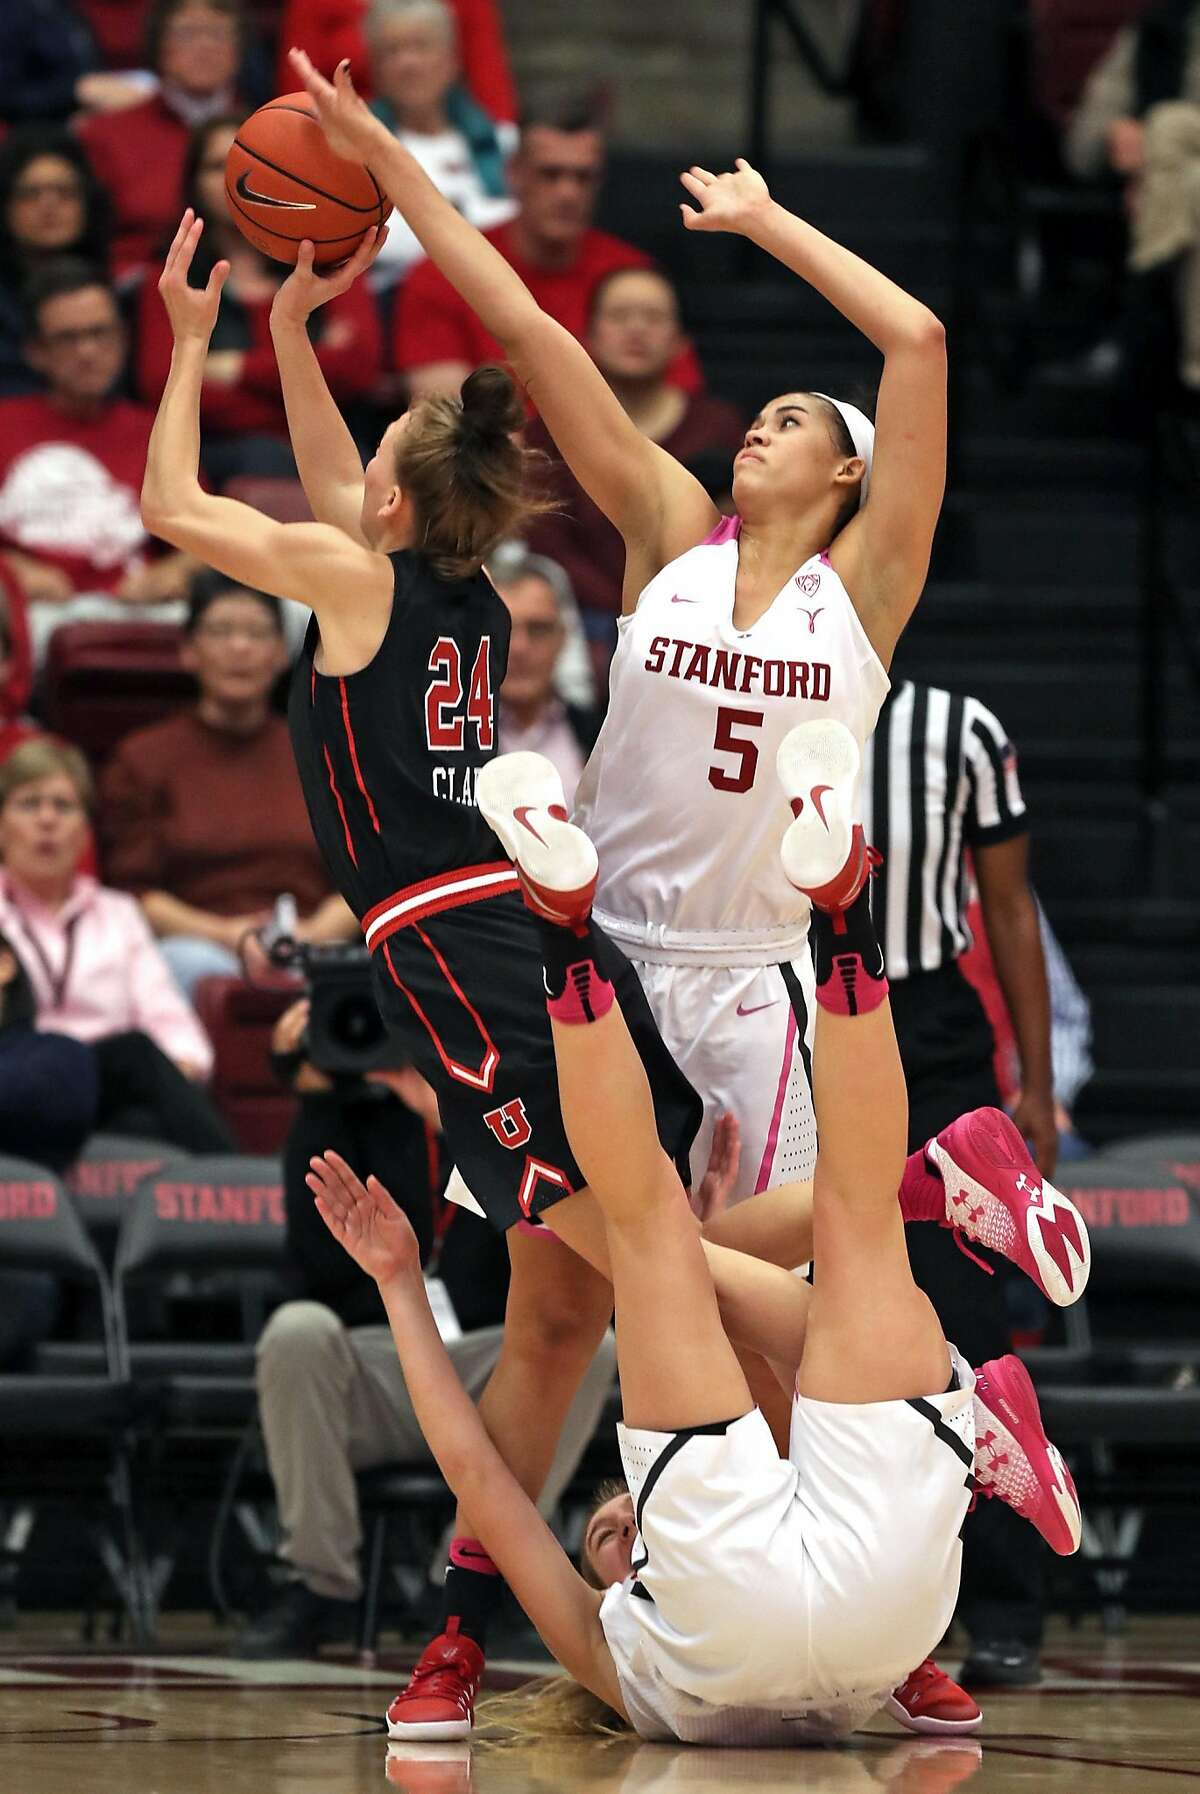 Stanford's Brittany McPhee (on floor) and Kaylee Johnson (5) double team Utah's Tilar Clark in 2nd quarter during PAC 12 Women's basketball game at Maples Pavilion in Stanford, Calif., on Sunday, February 12, 2017.